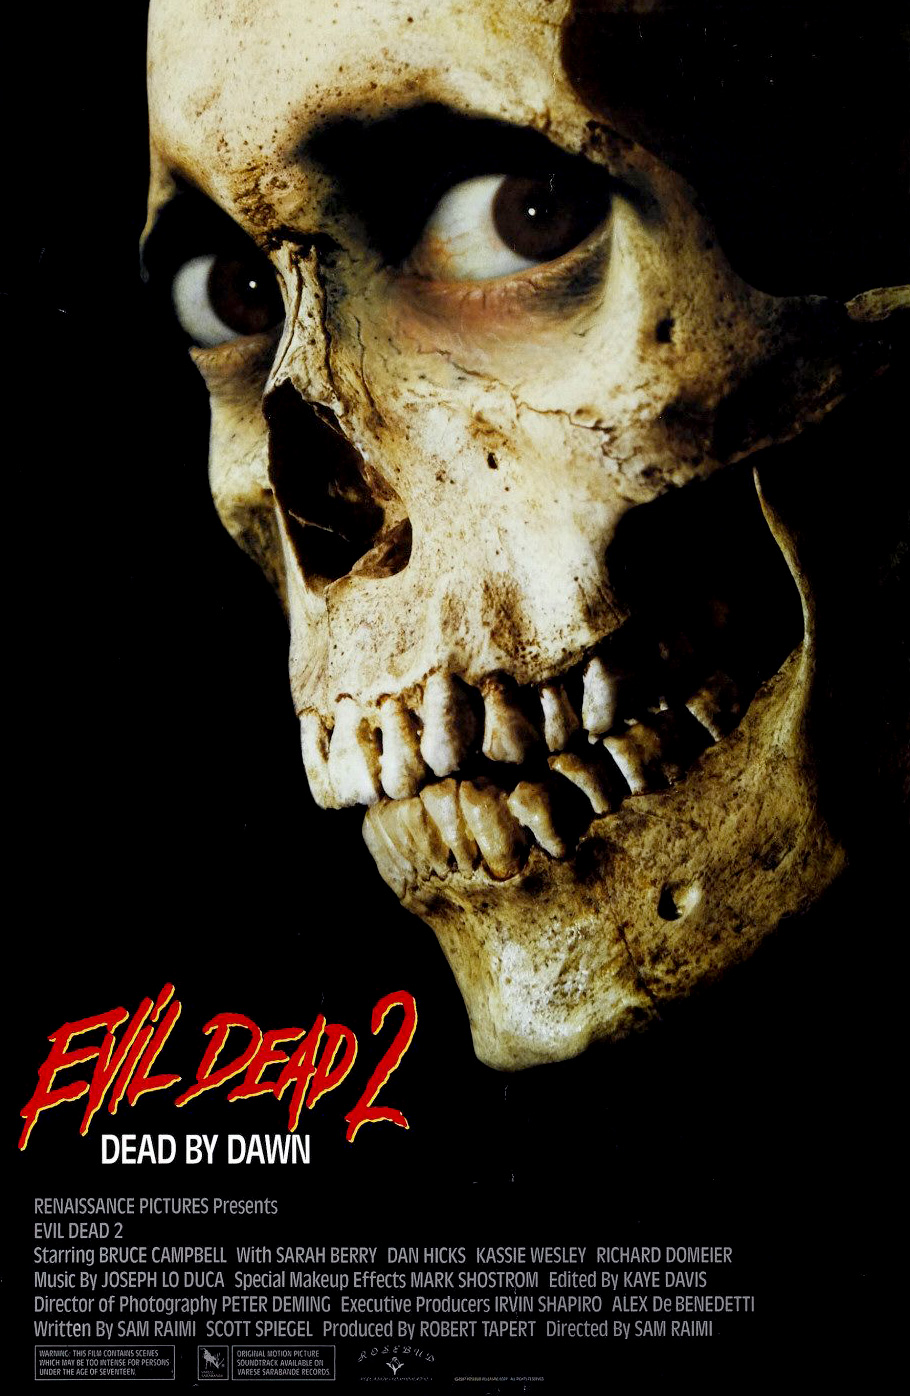 https://thatwasabitmental.files.wordpress.com/2015/10/evil-dead-2-poster.jpg